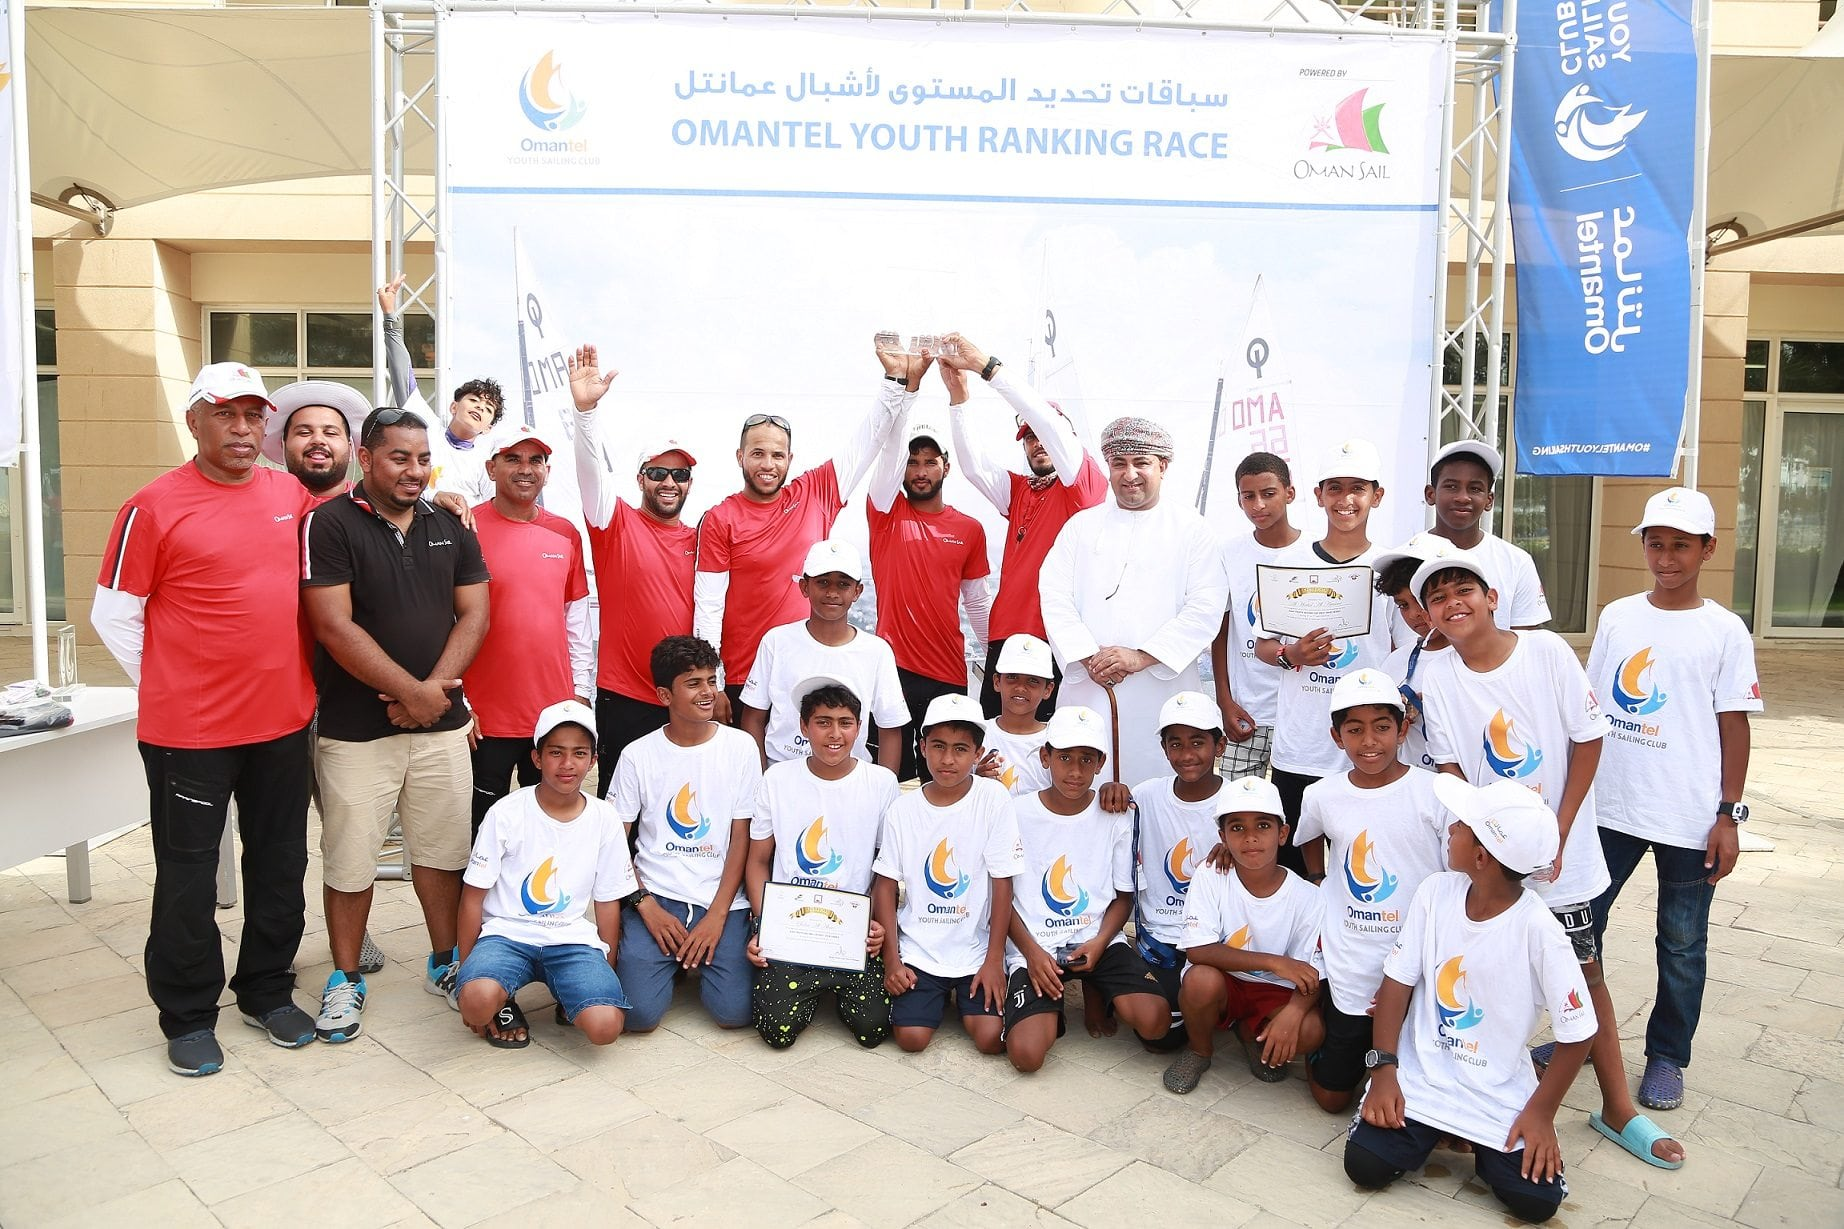 Omantel national youth squads selected after 3rd Ranking Race regatta at Mussanah Sport City